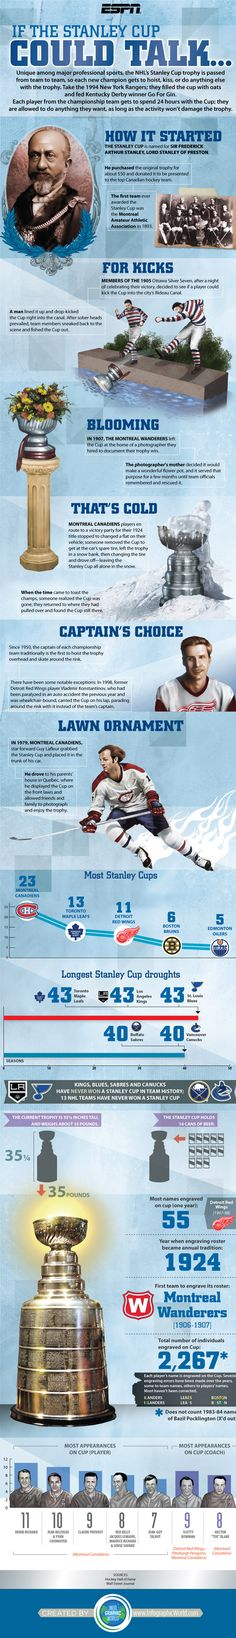 Cool facts on Stanley Cup....obviously outdated since my Kings now have 2 cups!